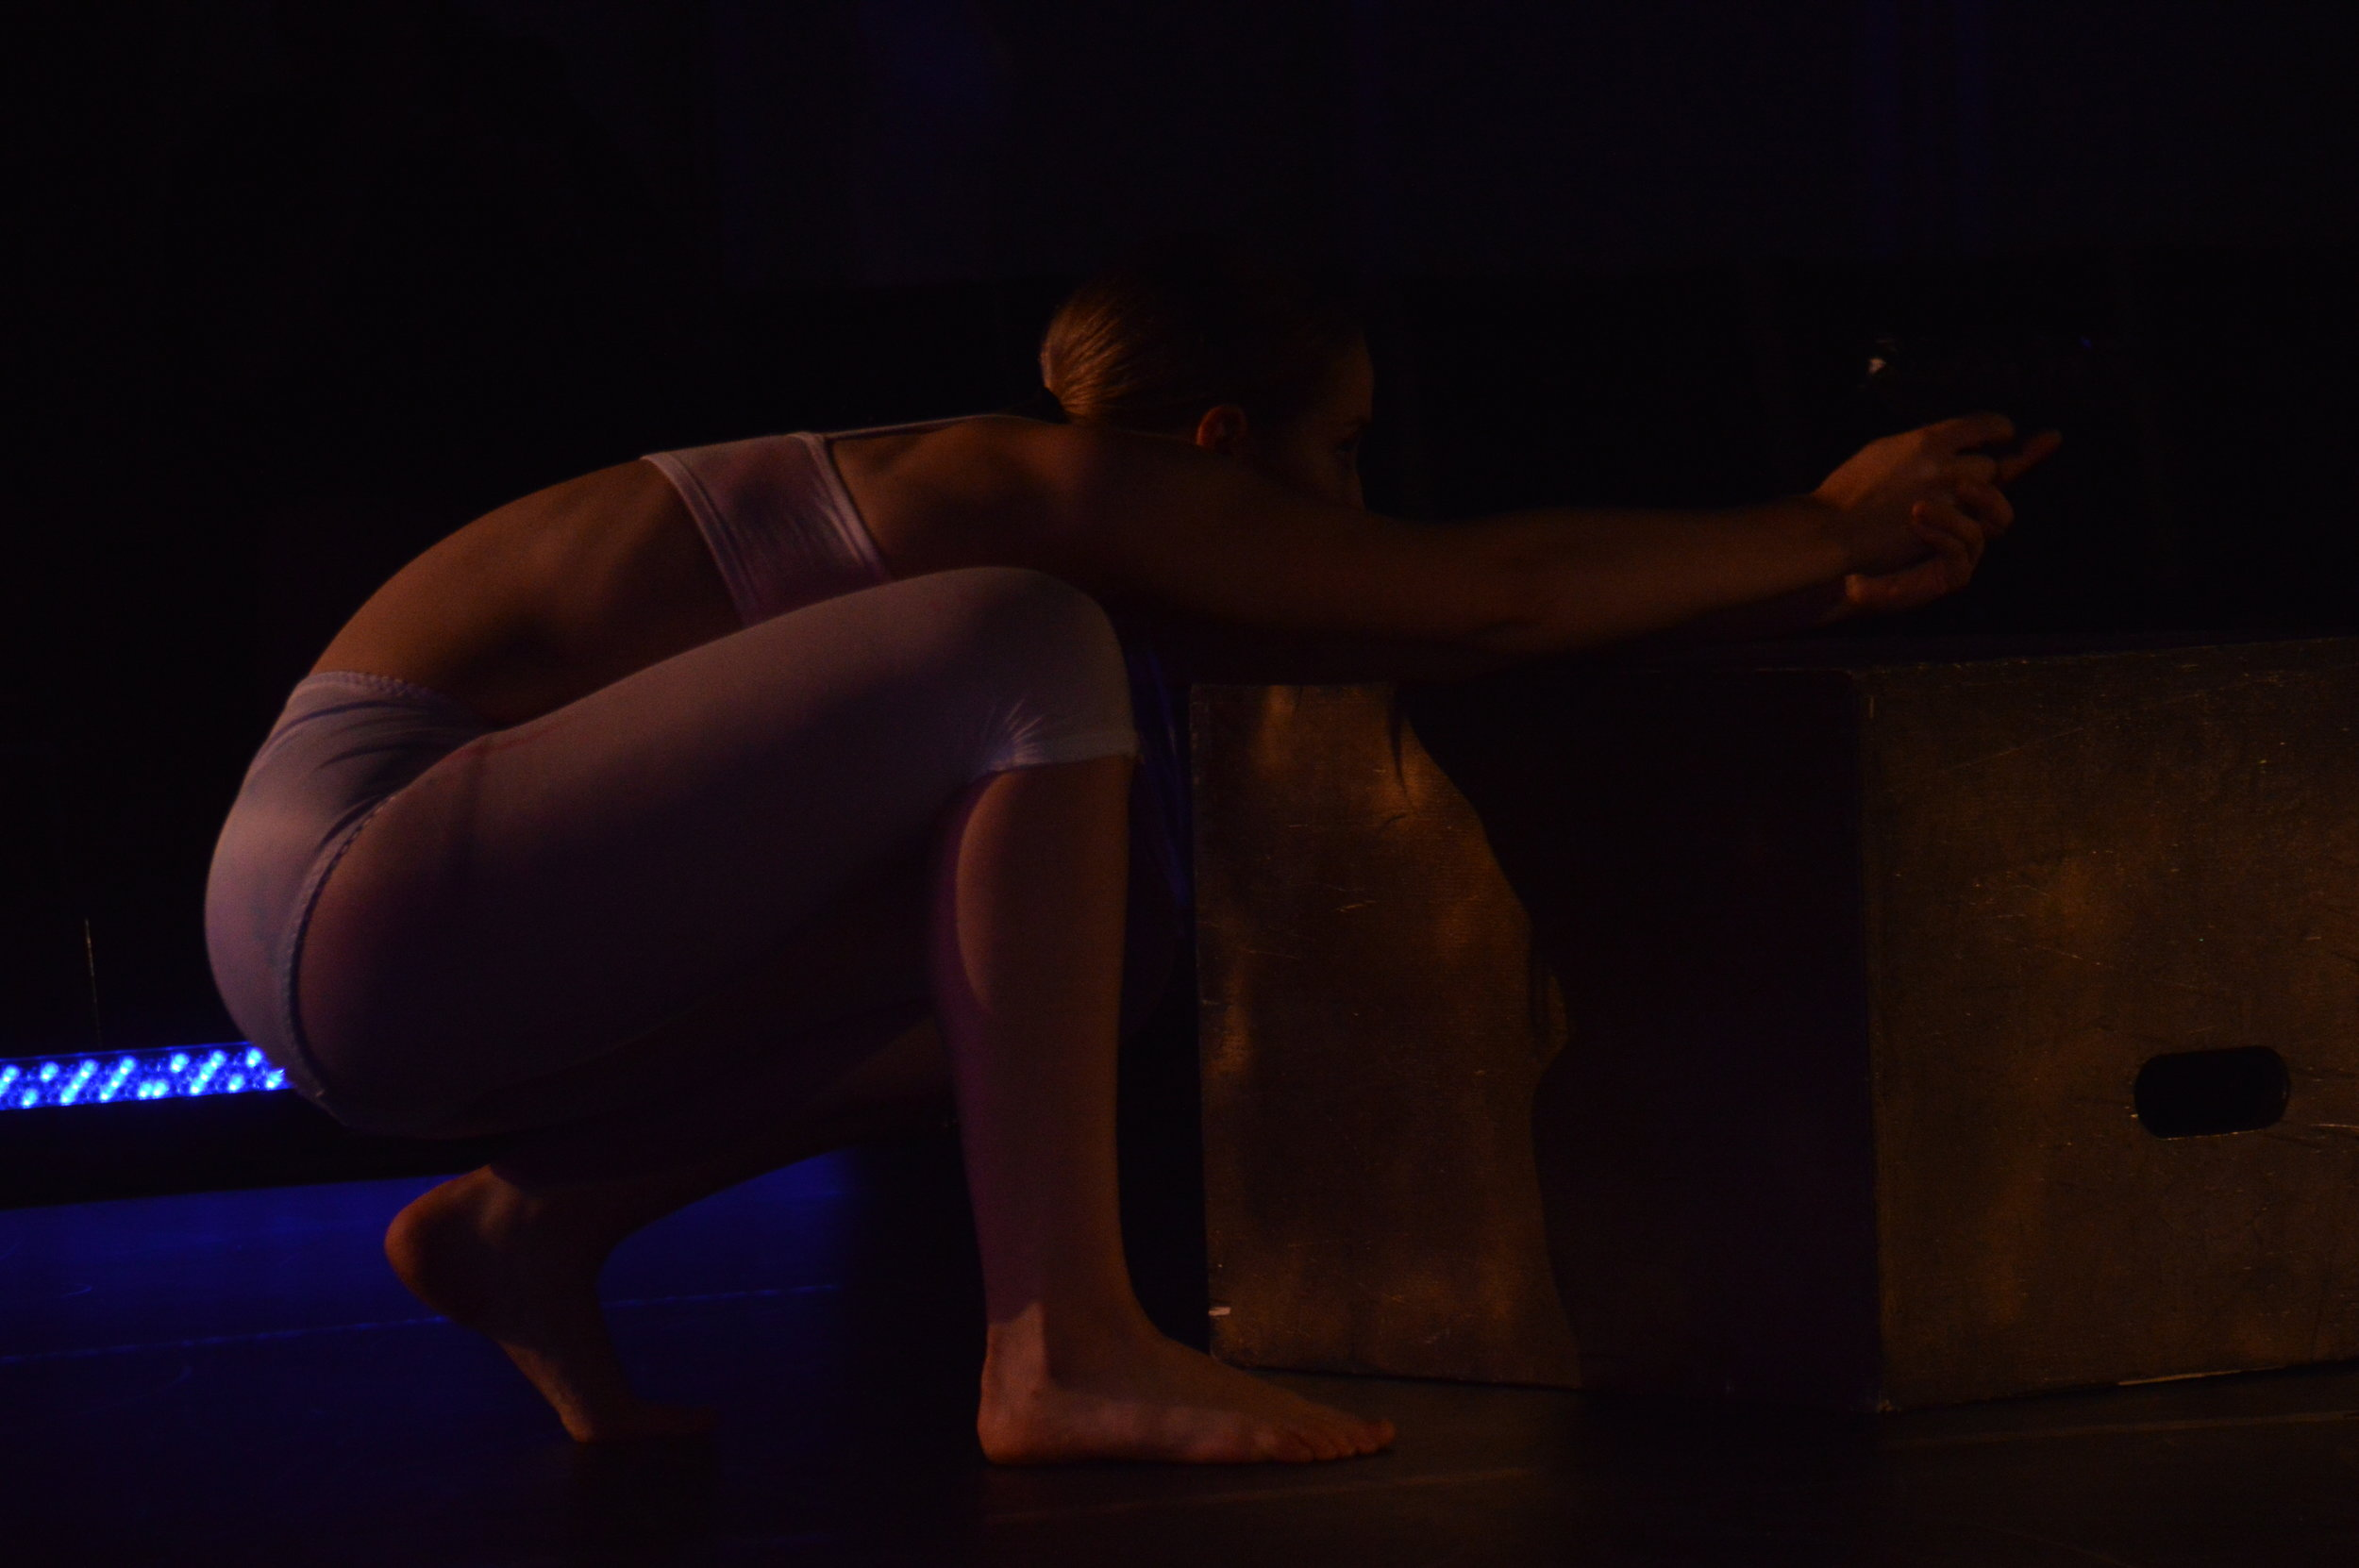 again, again, again. - 2016Our natural tendencies lie in our obligation to build, structure and grow. We only notice the things we lack; in ourselves once they have been recognized. Once impacted, it is our job to deconstruct, rebuild and create ourselves to beauty again.Performers:Premiere - Night Swim: Tara Kisil, Hannah Krostewitz, Carley Stastny, music rights: Teen Suicide - Haunt (x3)Remount - New Blue Festival 2017: Laura Carella, Brianna Salmon, Carley Stastny, original soundtrack by Nigel Edward